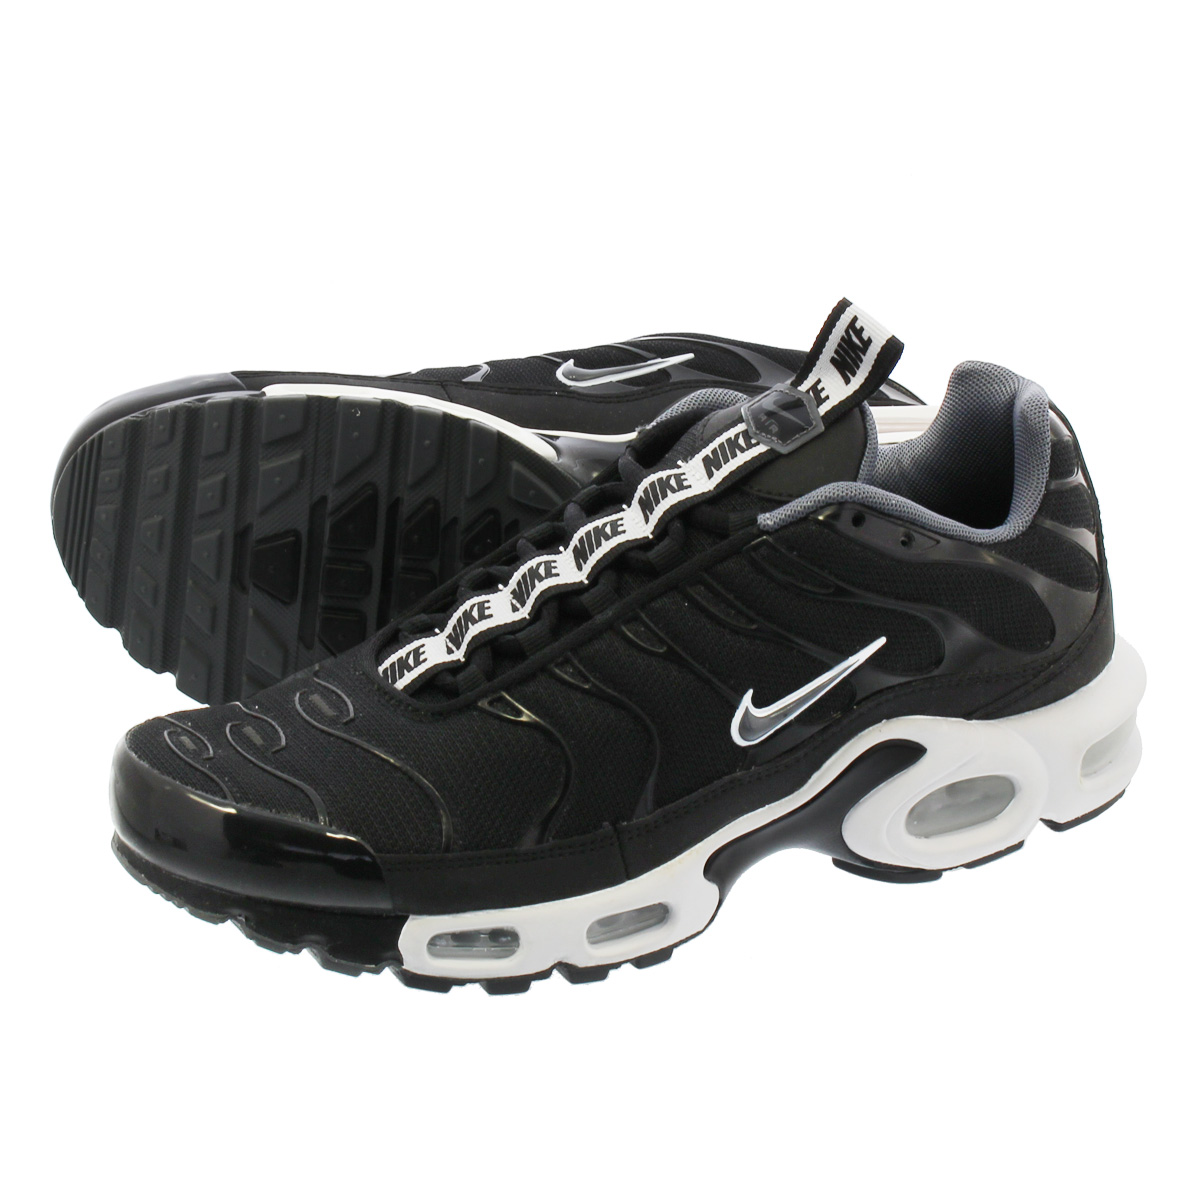 promo code 16abf d8da0 NIKE AIR MAX PLUS TN SE Kie Ney AMAX plus TN SE BLACK/WHITE aq4128-001